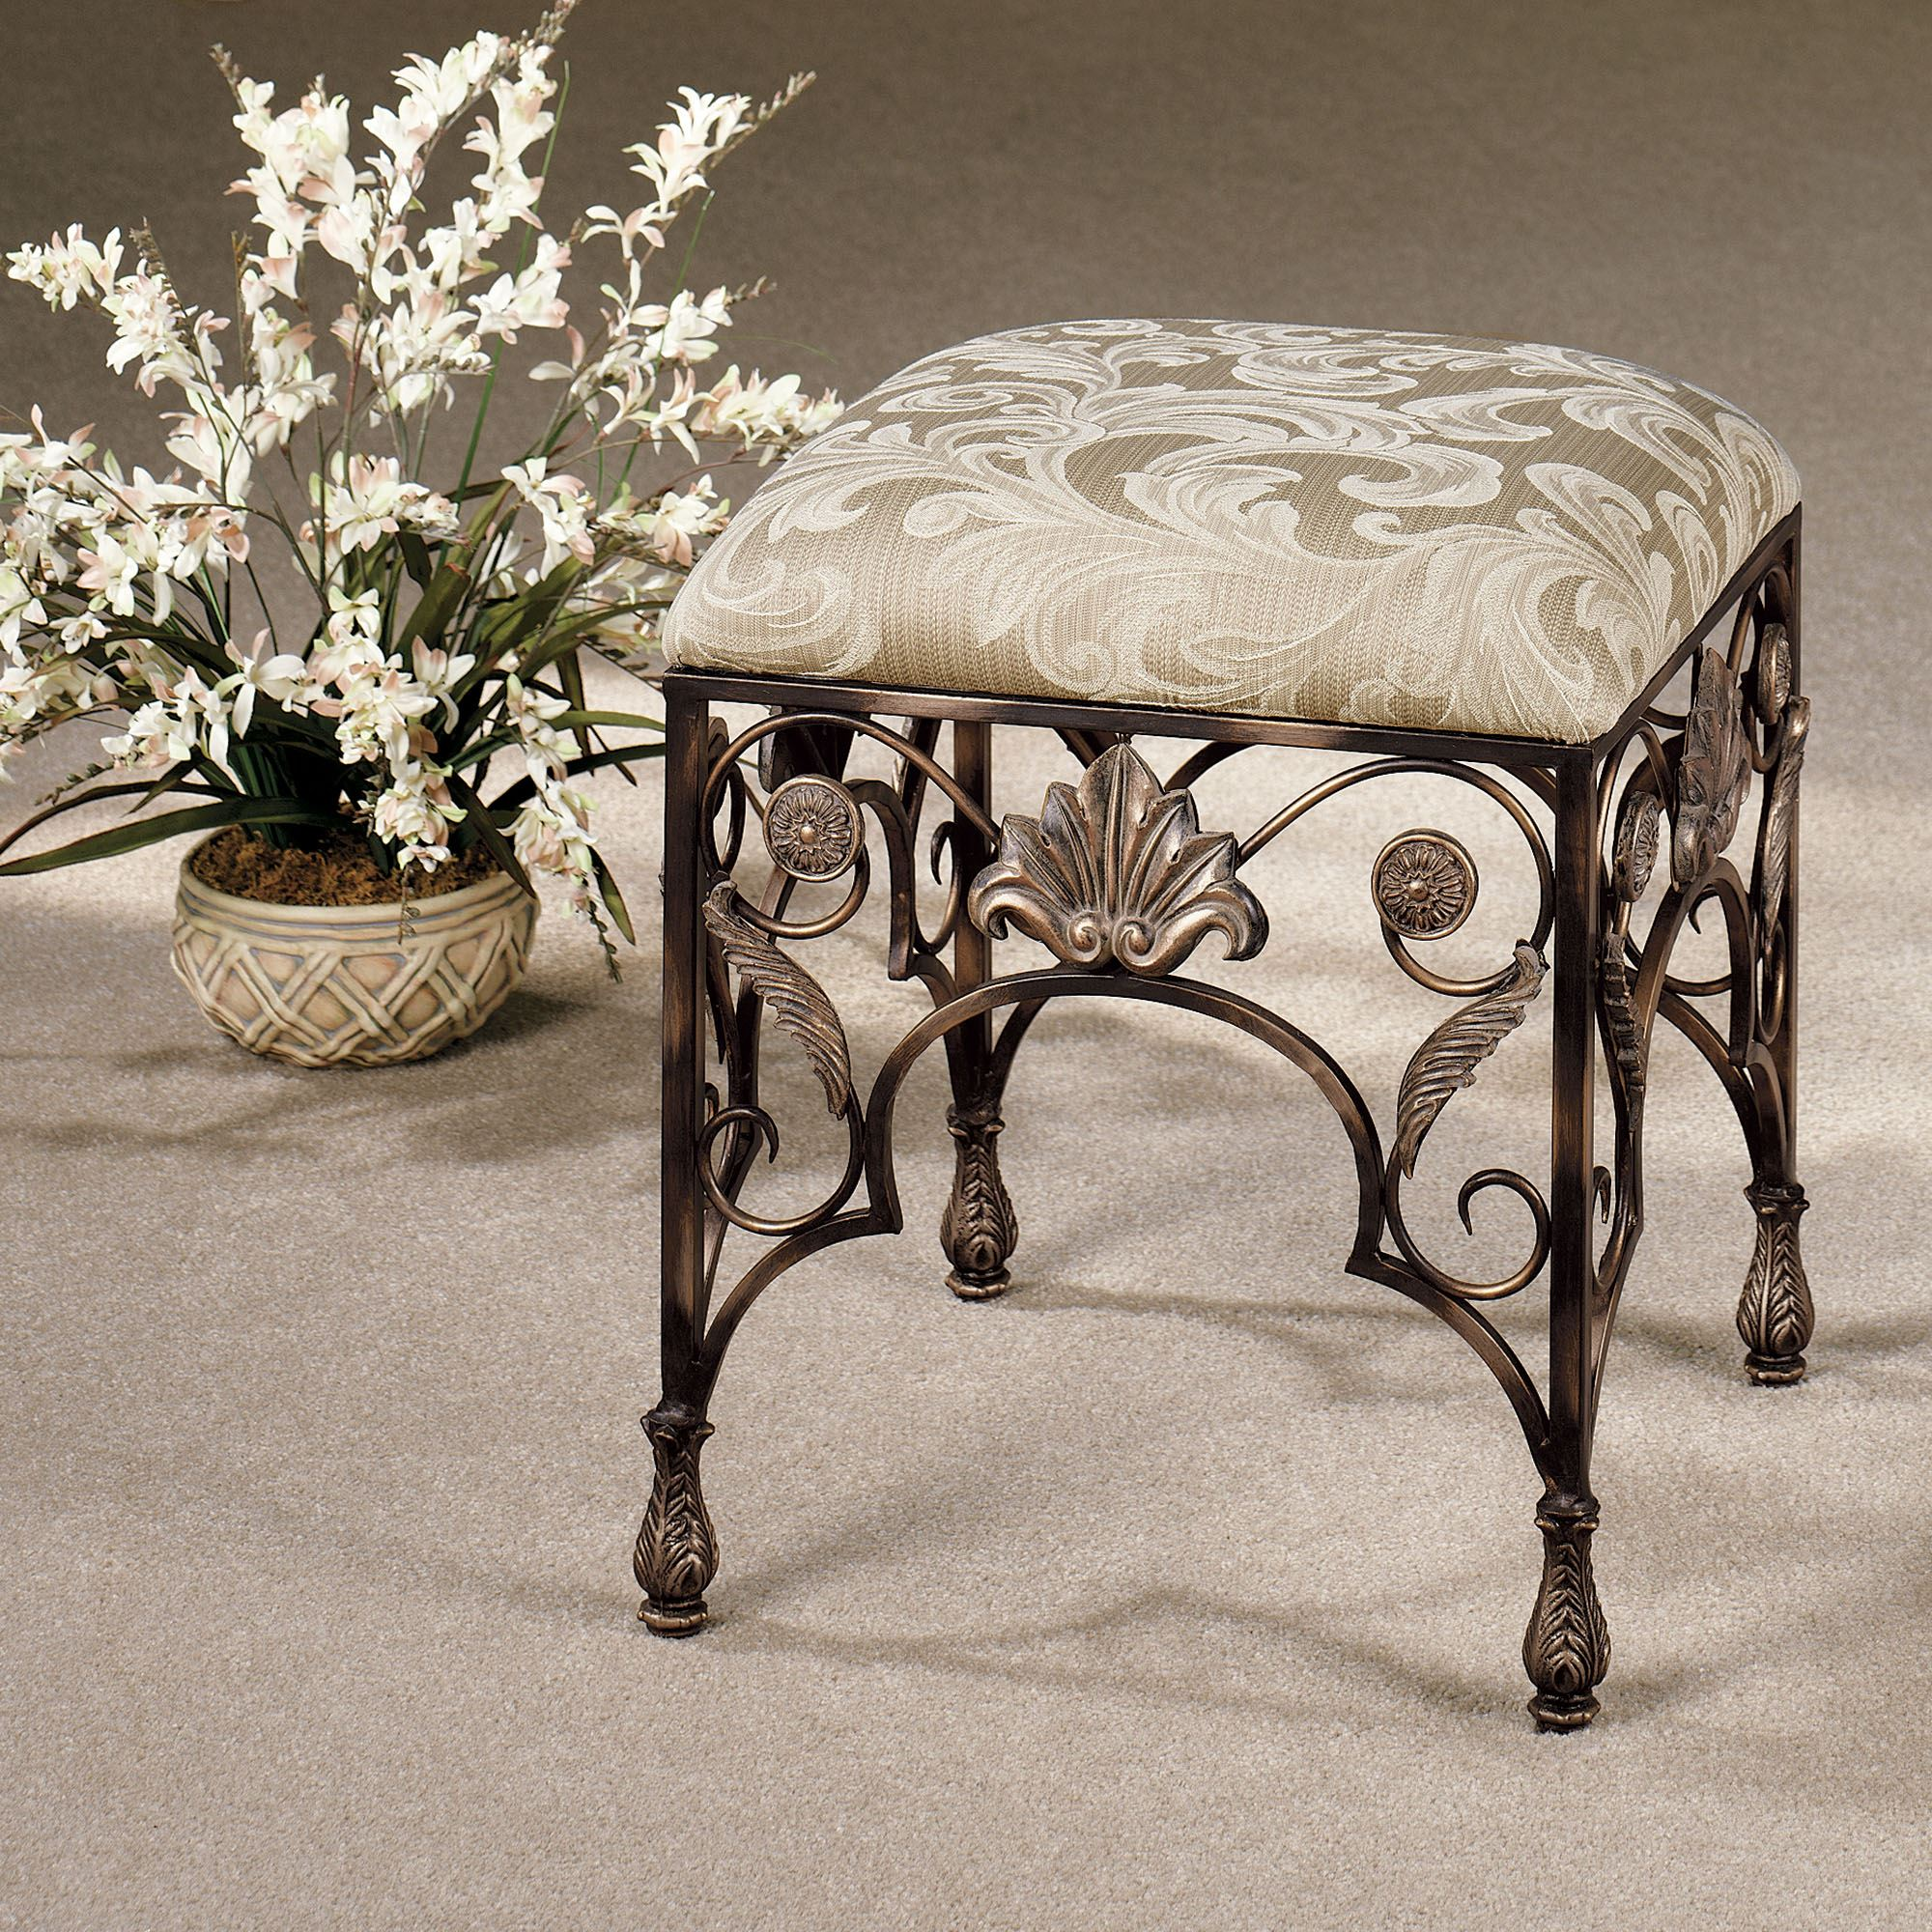 Raina Upholstered Vanity Stool